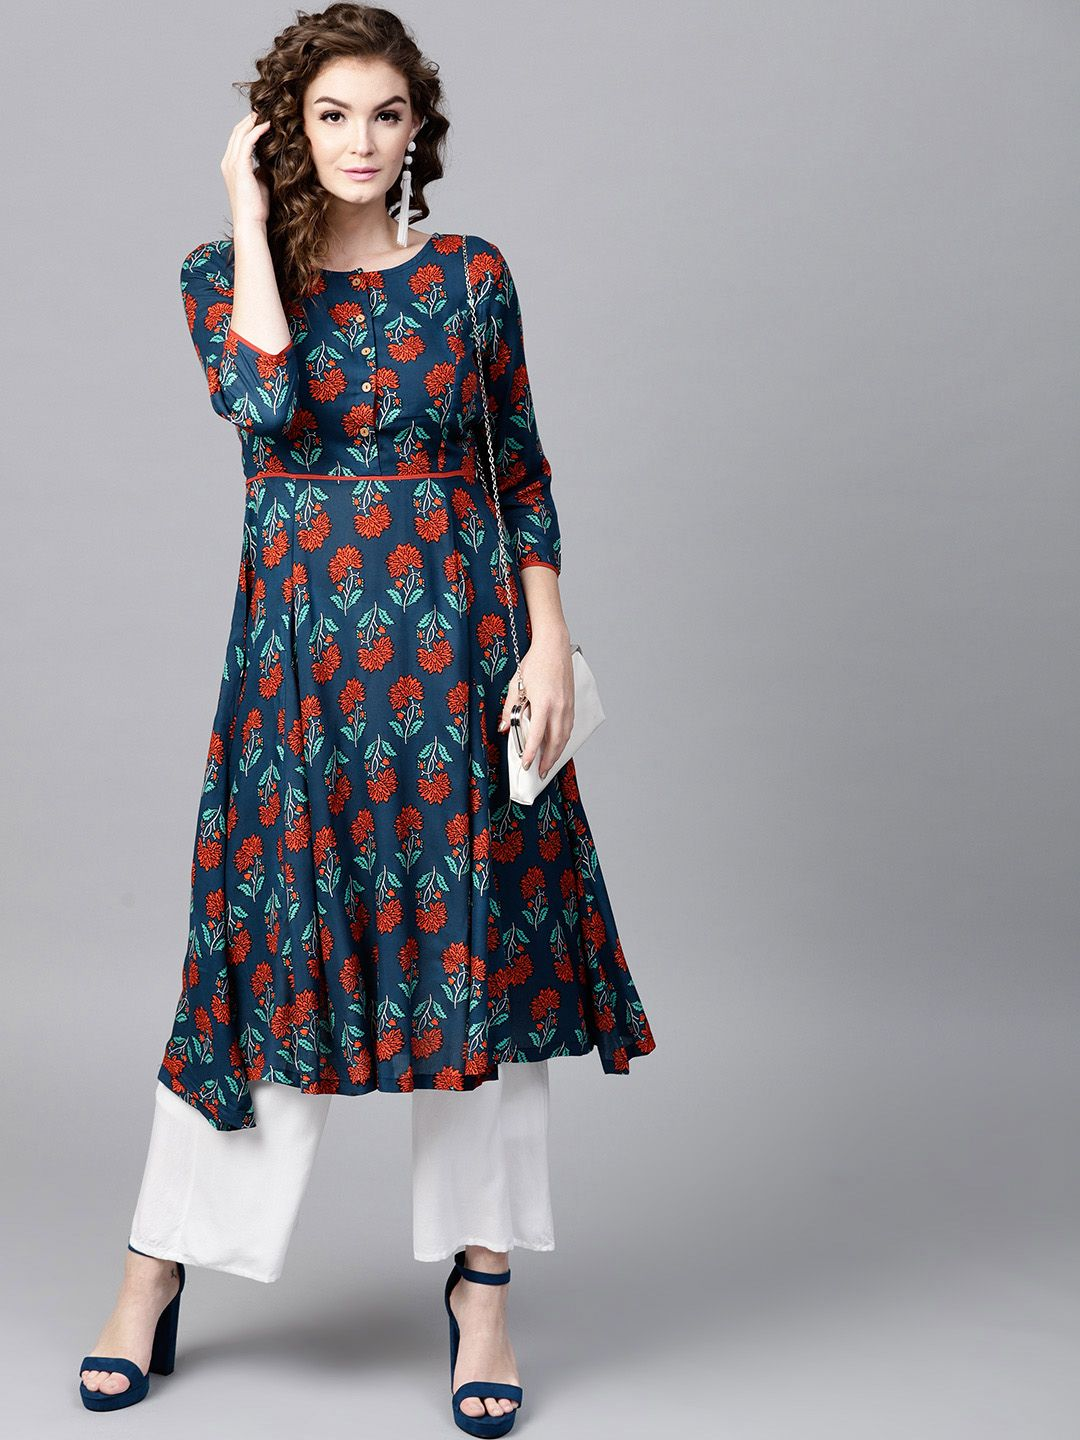 8d723317744 SASSAFRAS Teal Blue Printed Flared Kurta #TealBlue #Printed #Flared #Kurta